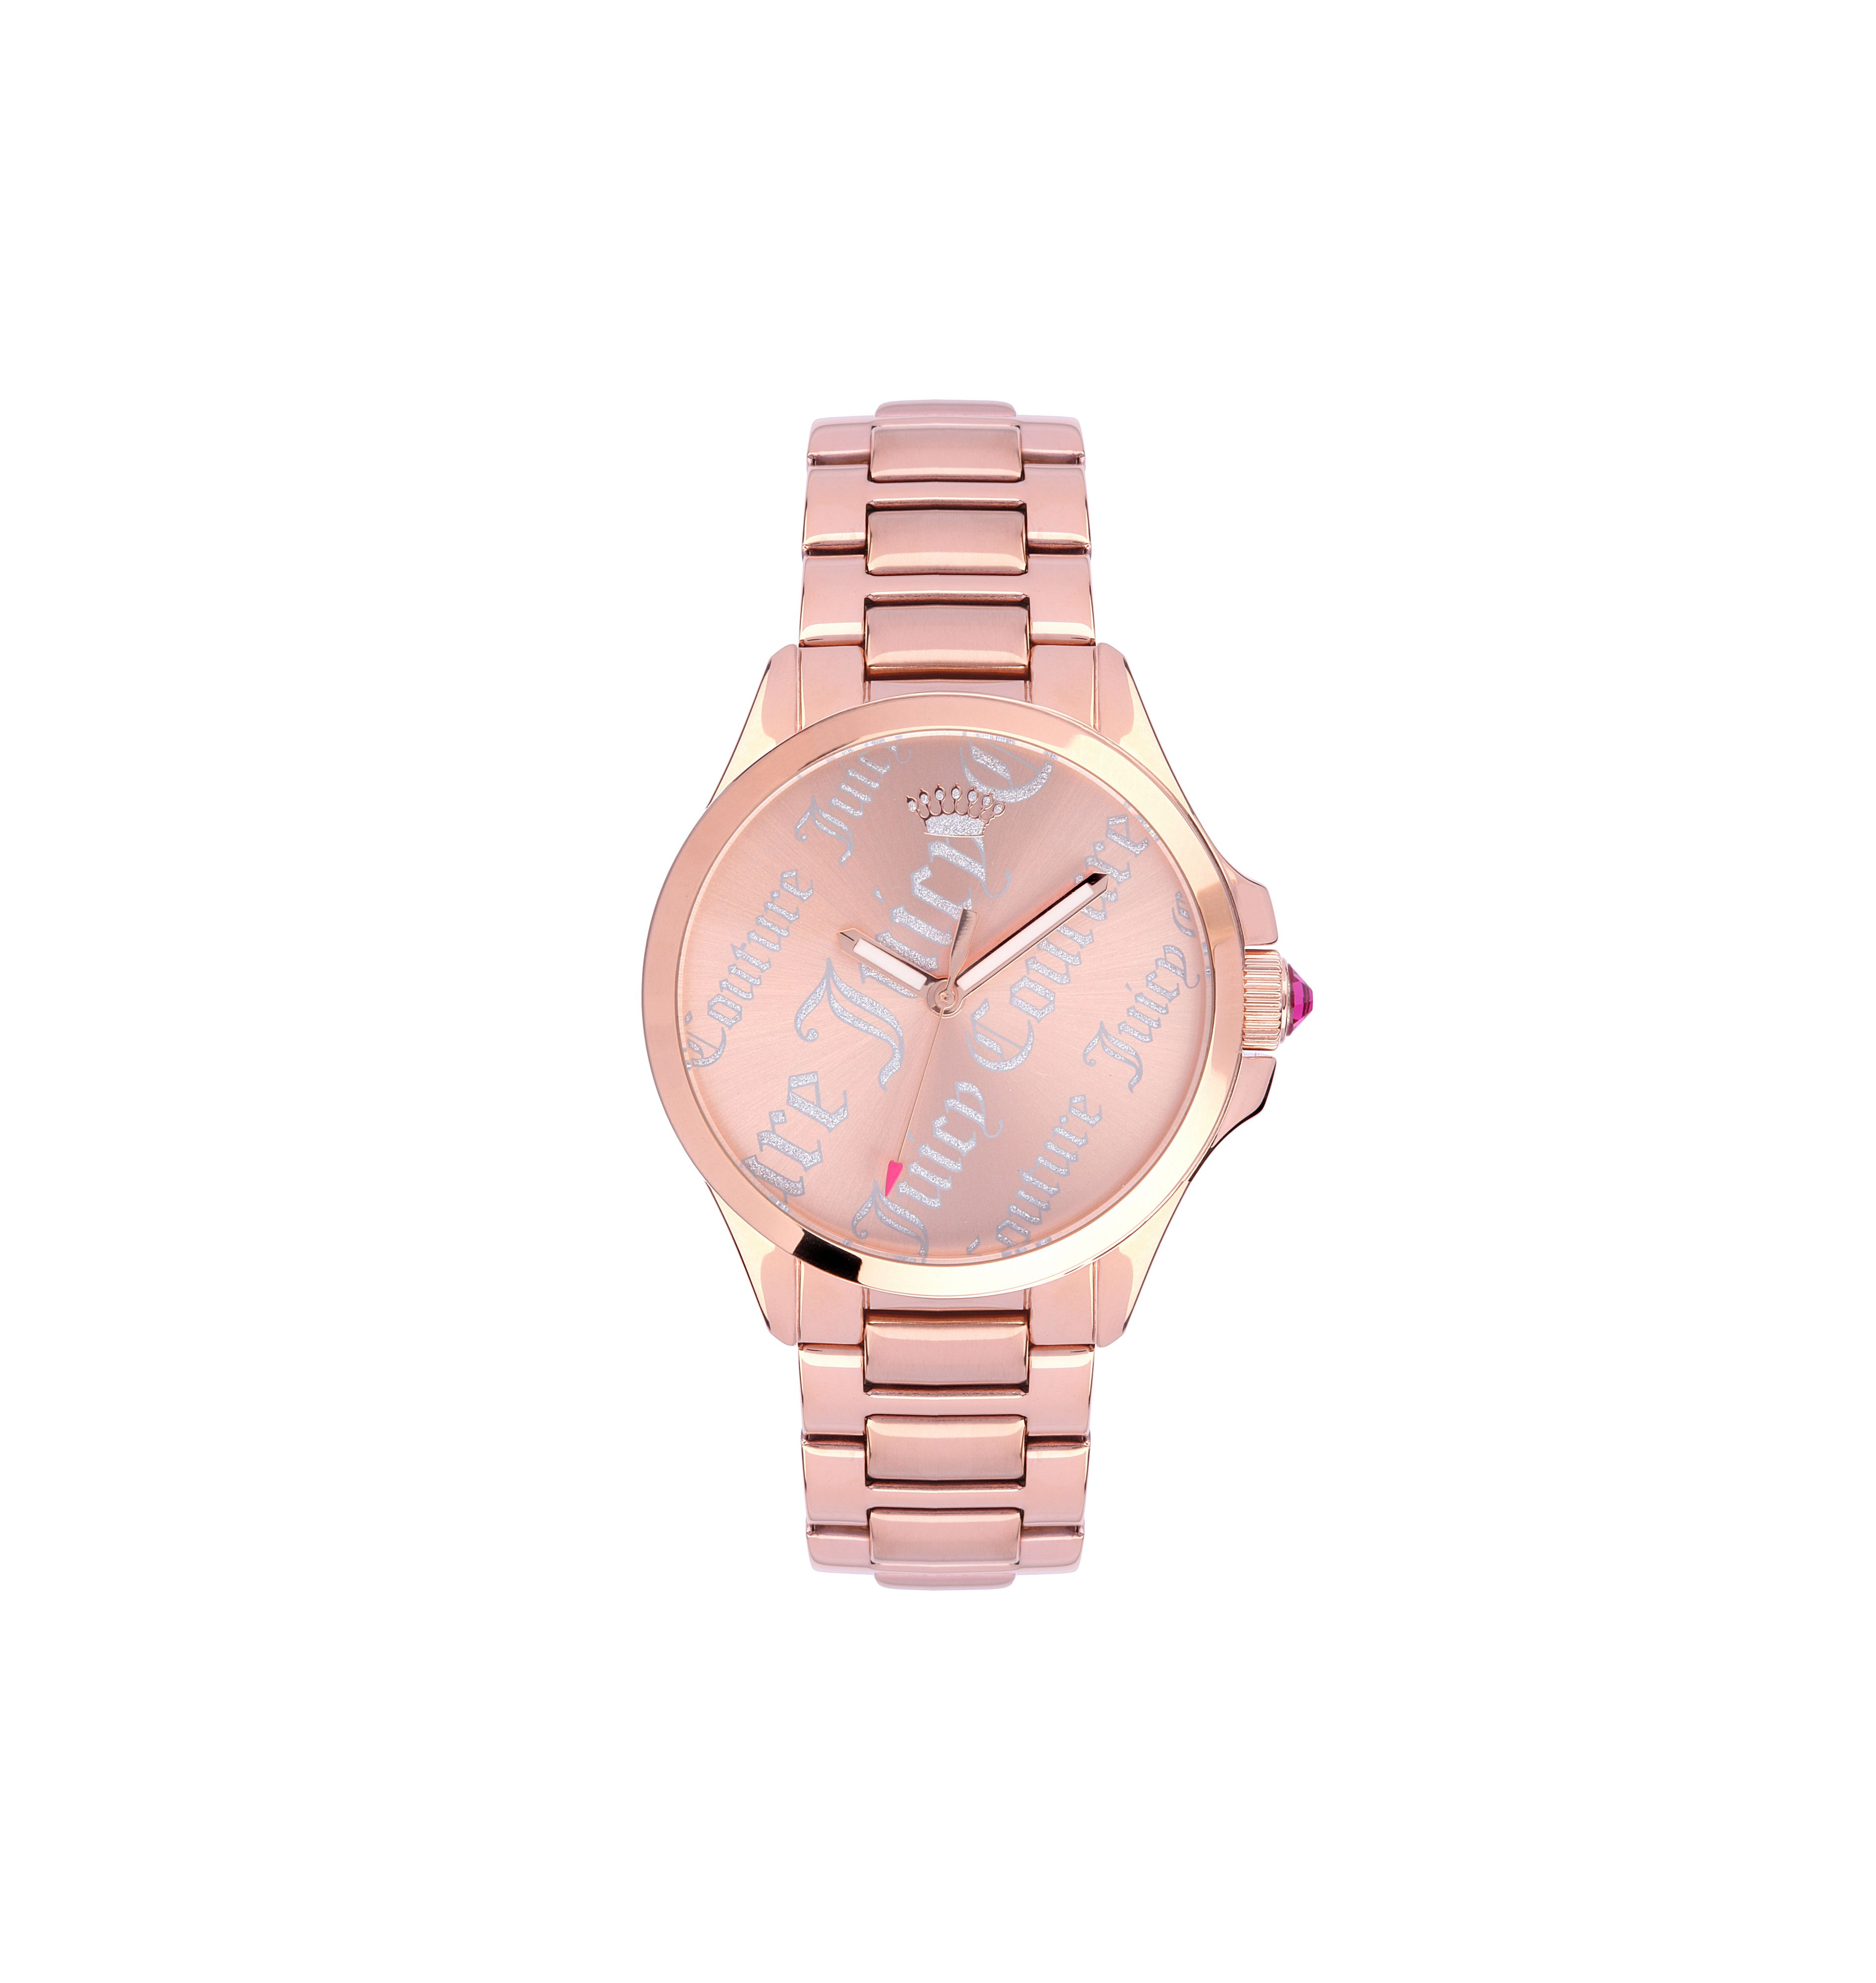 Juicy Couture 1901278 ladies bracelet watch NA